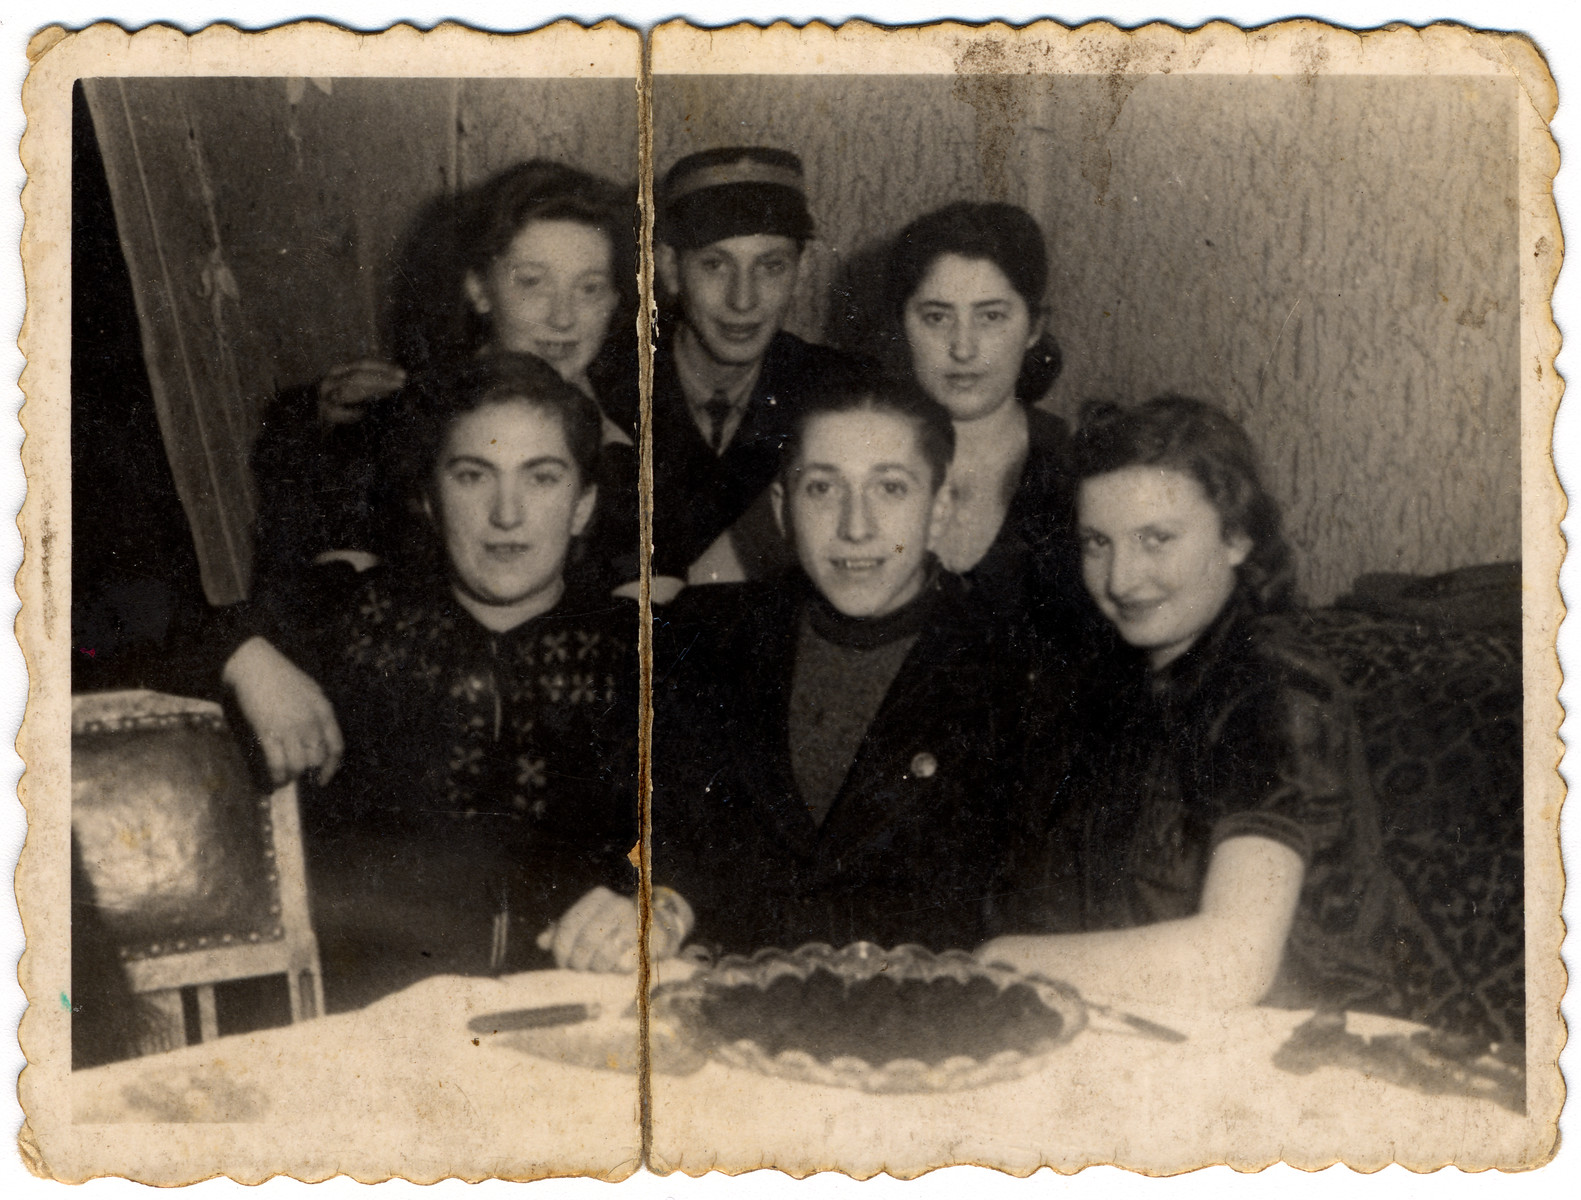 A group of four young girls and two boys (Jechiel and Izak Lewkowicz) pose at a dining-room table in the Lodz ghetto.   Izak Lewkowicz (standing second from left) is wearing his postal worker's cap. Jechiel is sitting in the center.